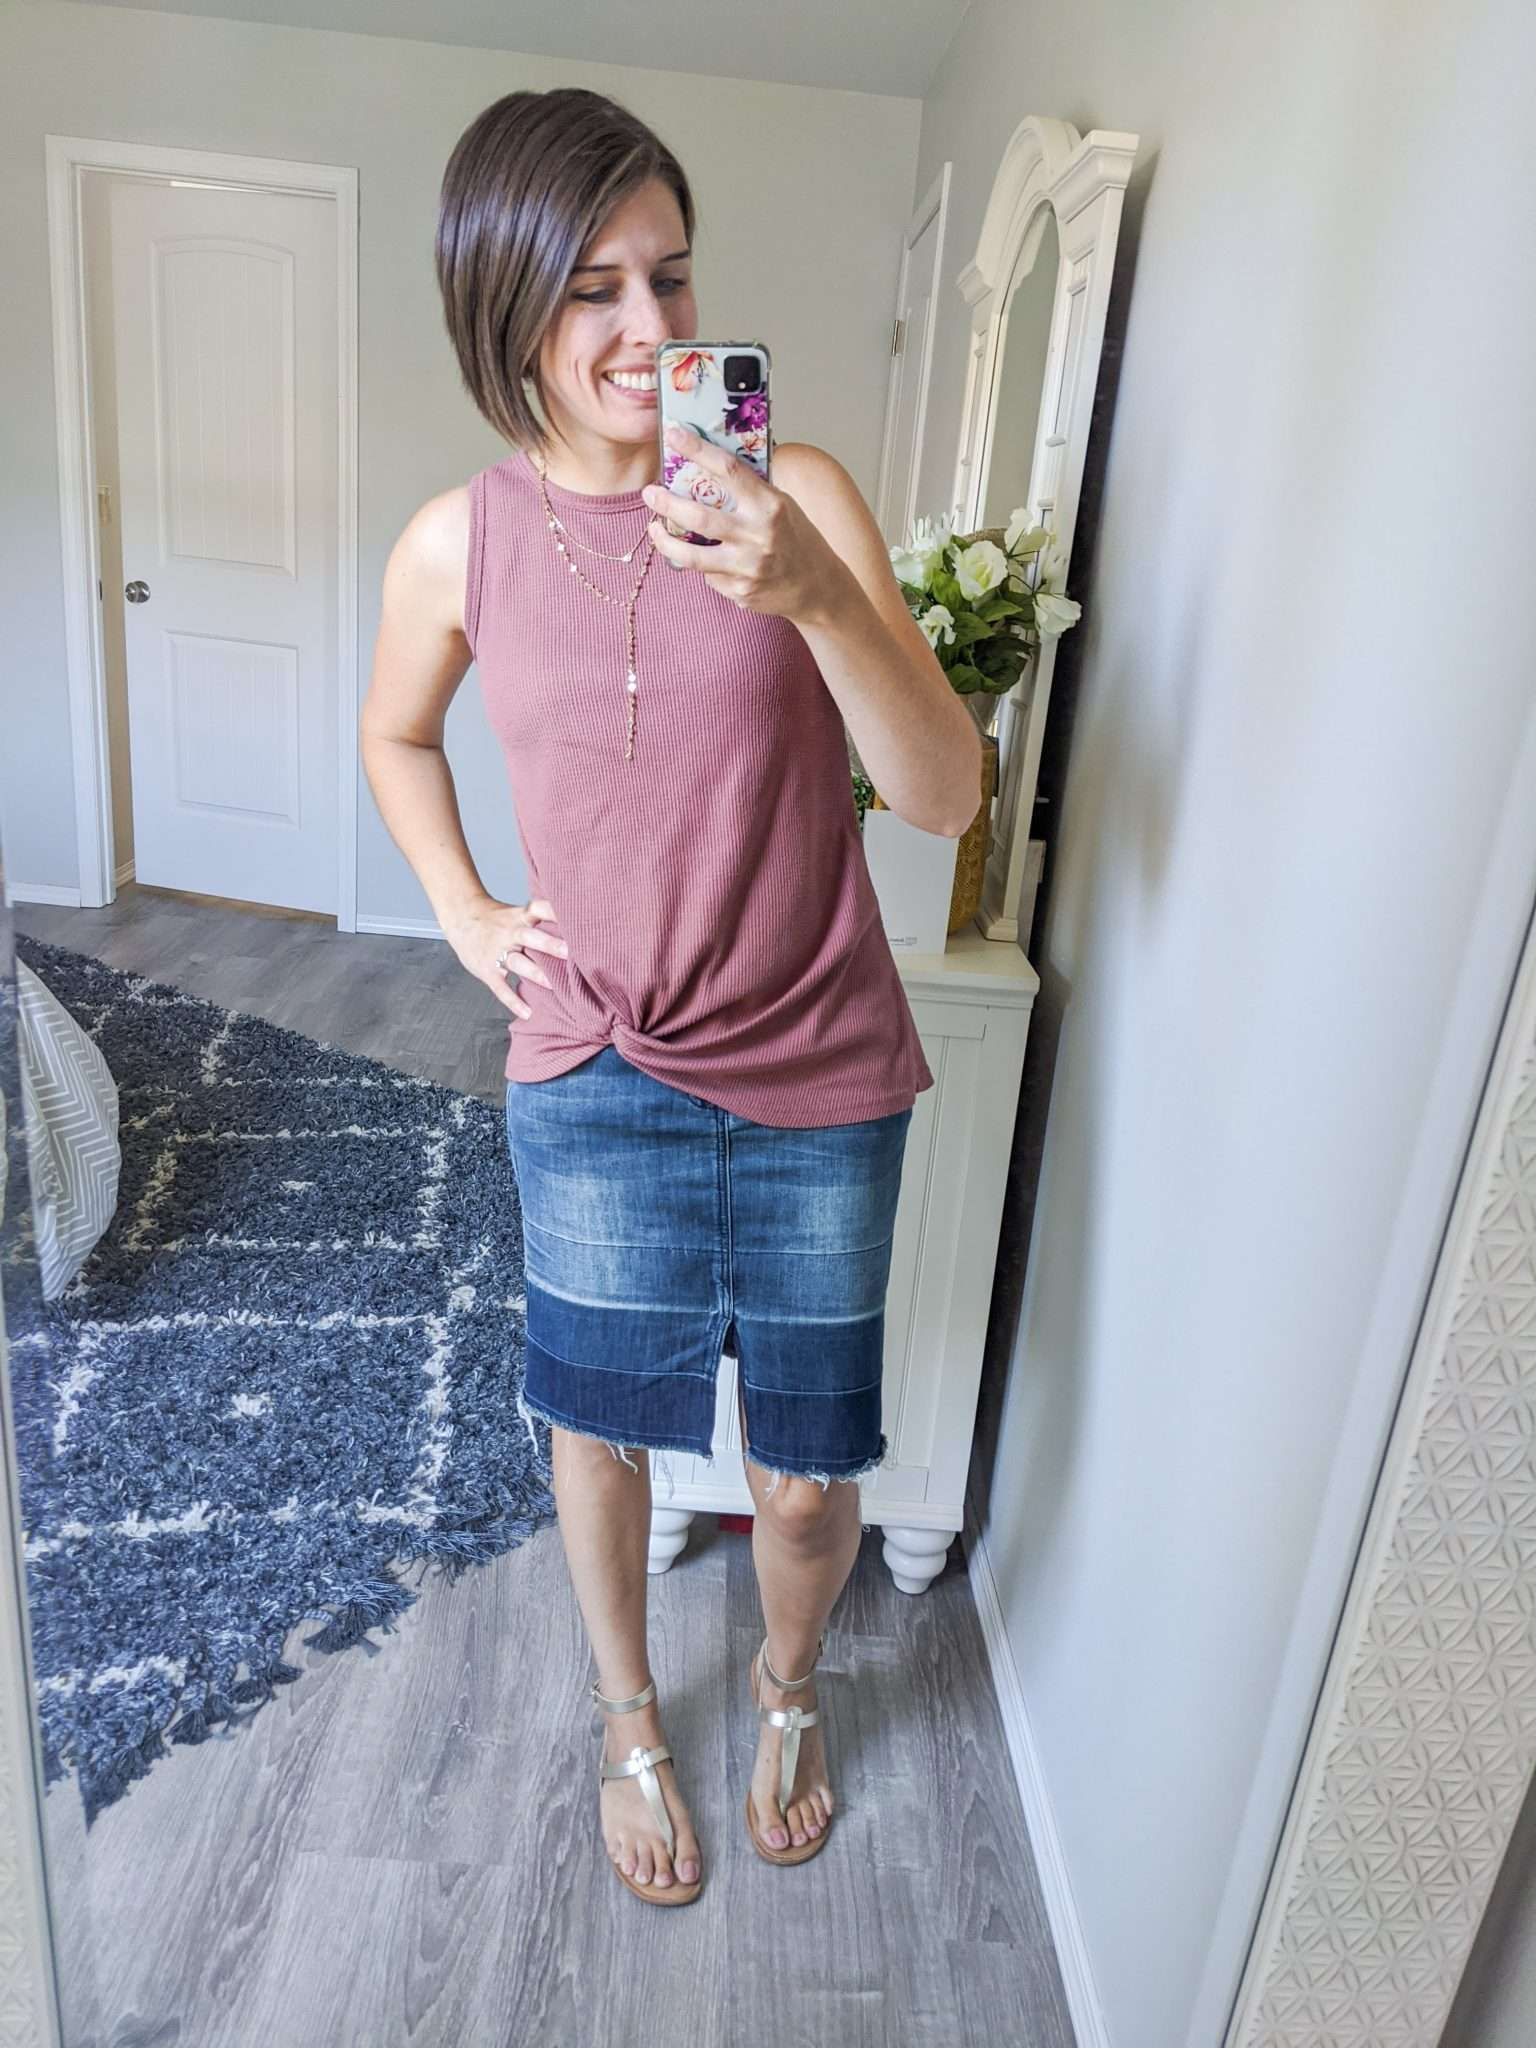 Summer to Fall transition outfits - How to transition summer clothes to fall - fall-toned tank + denim skirt